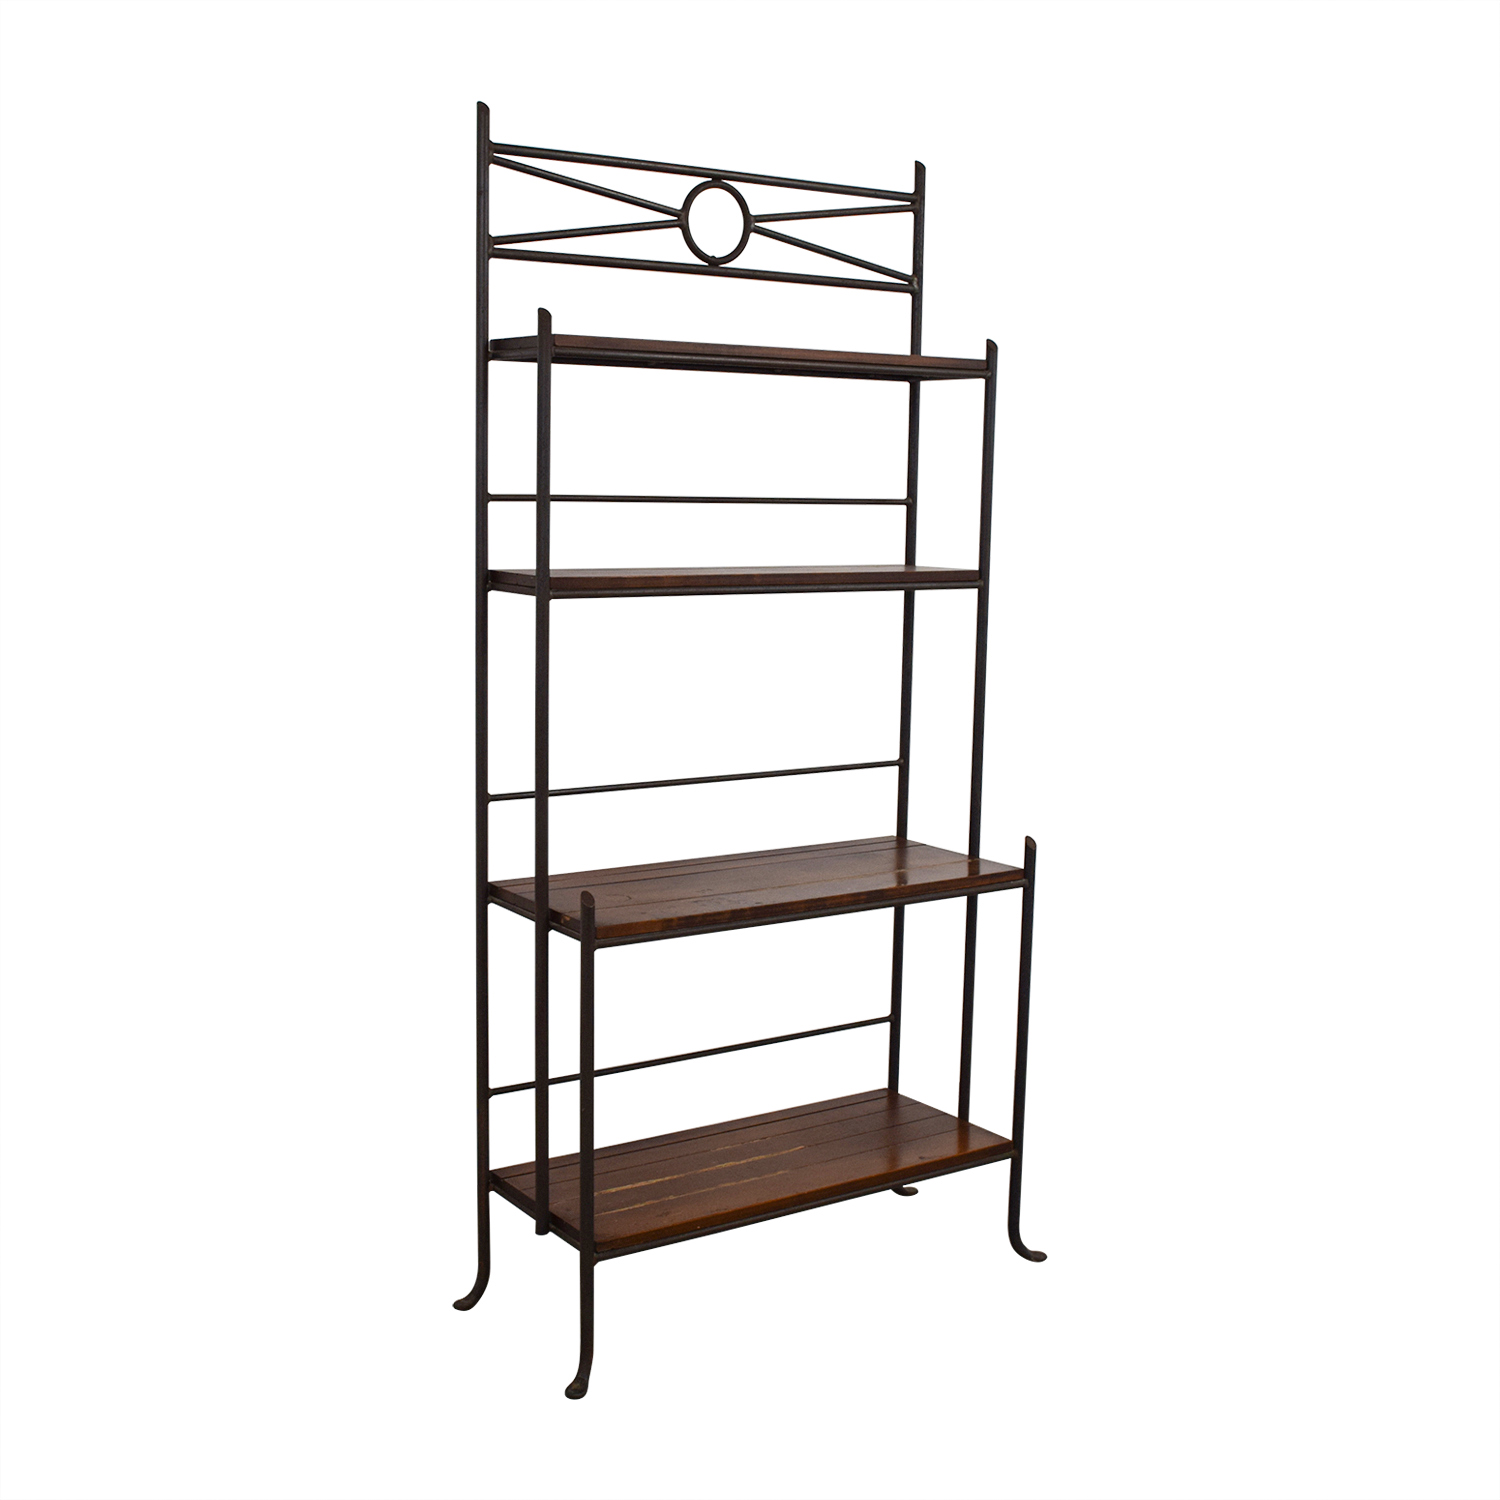 Crate & Barrel Crate & Barrel Wood and Metal Book Case second hand